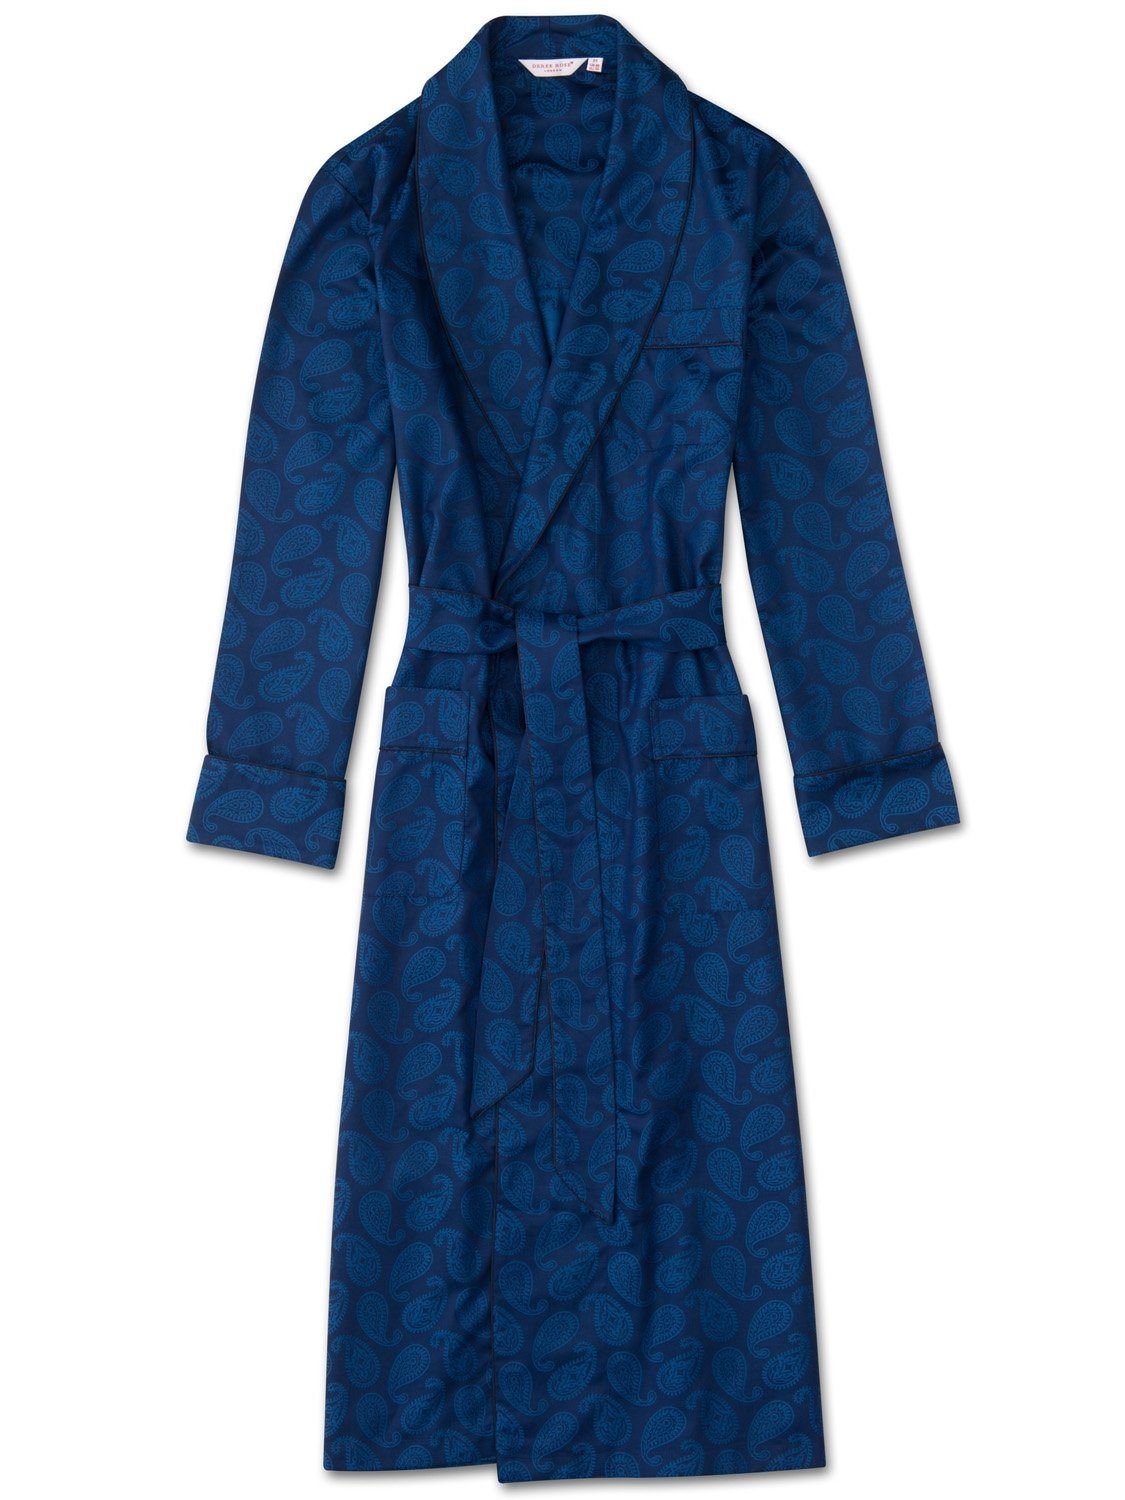 Men's Piped Dressing Gown Paris 13 Cotton Jacquard Navy